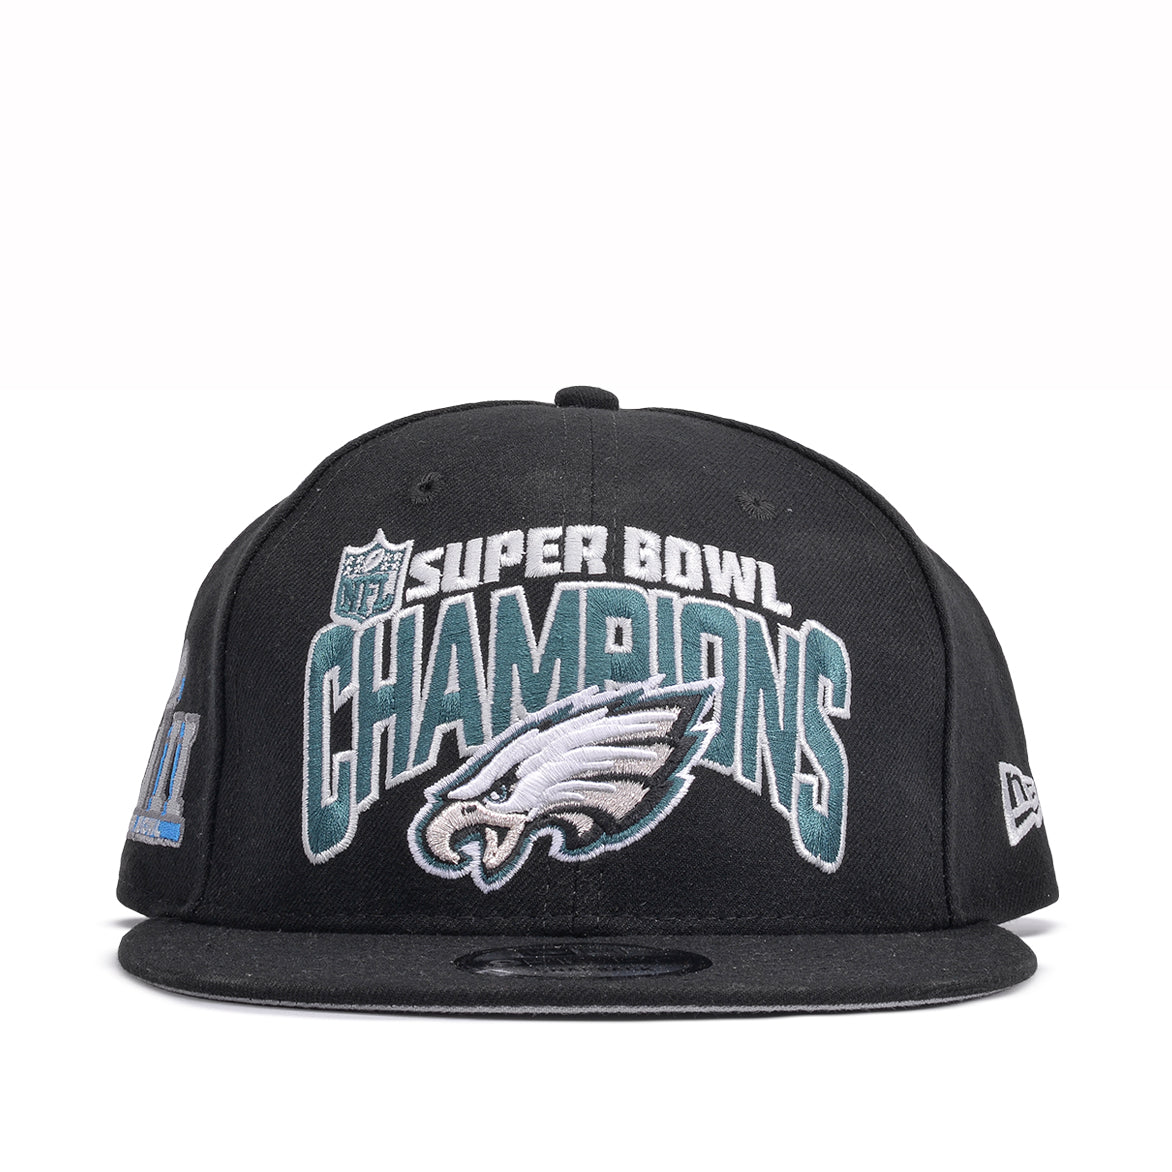 71accccb5a5 PHILADELPHIA EAGLES SUPER BOWL CHAMPIONS 9FIFTY SNAPBACK - BLACK ...